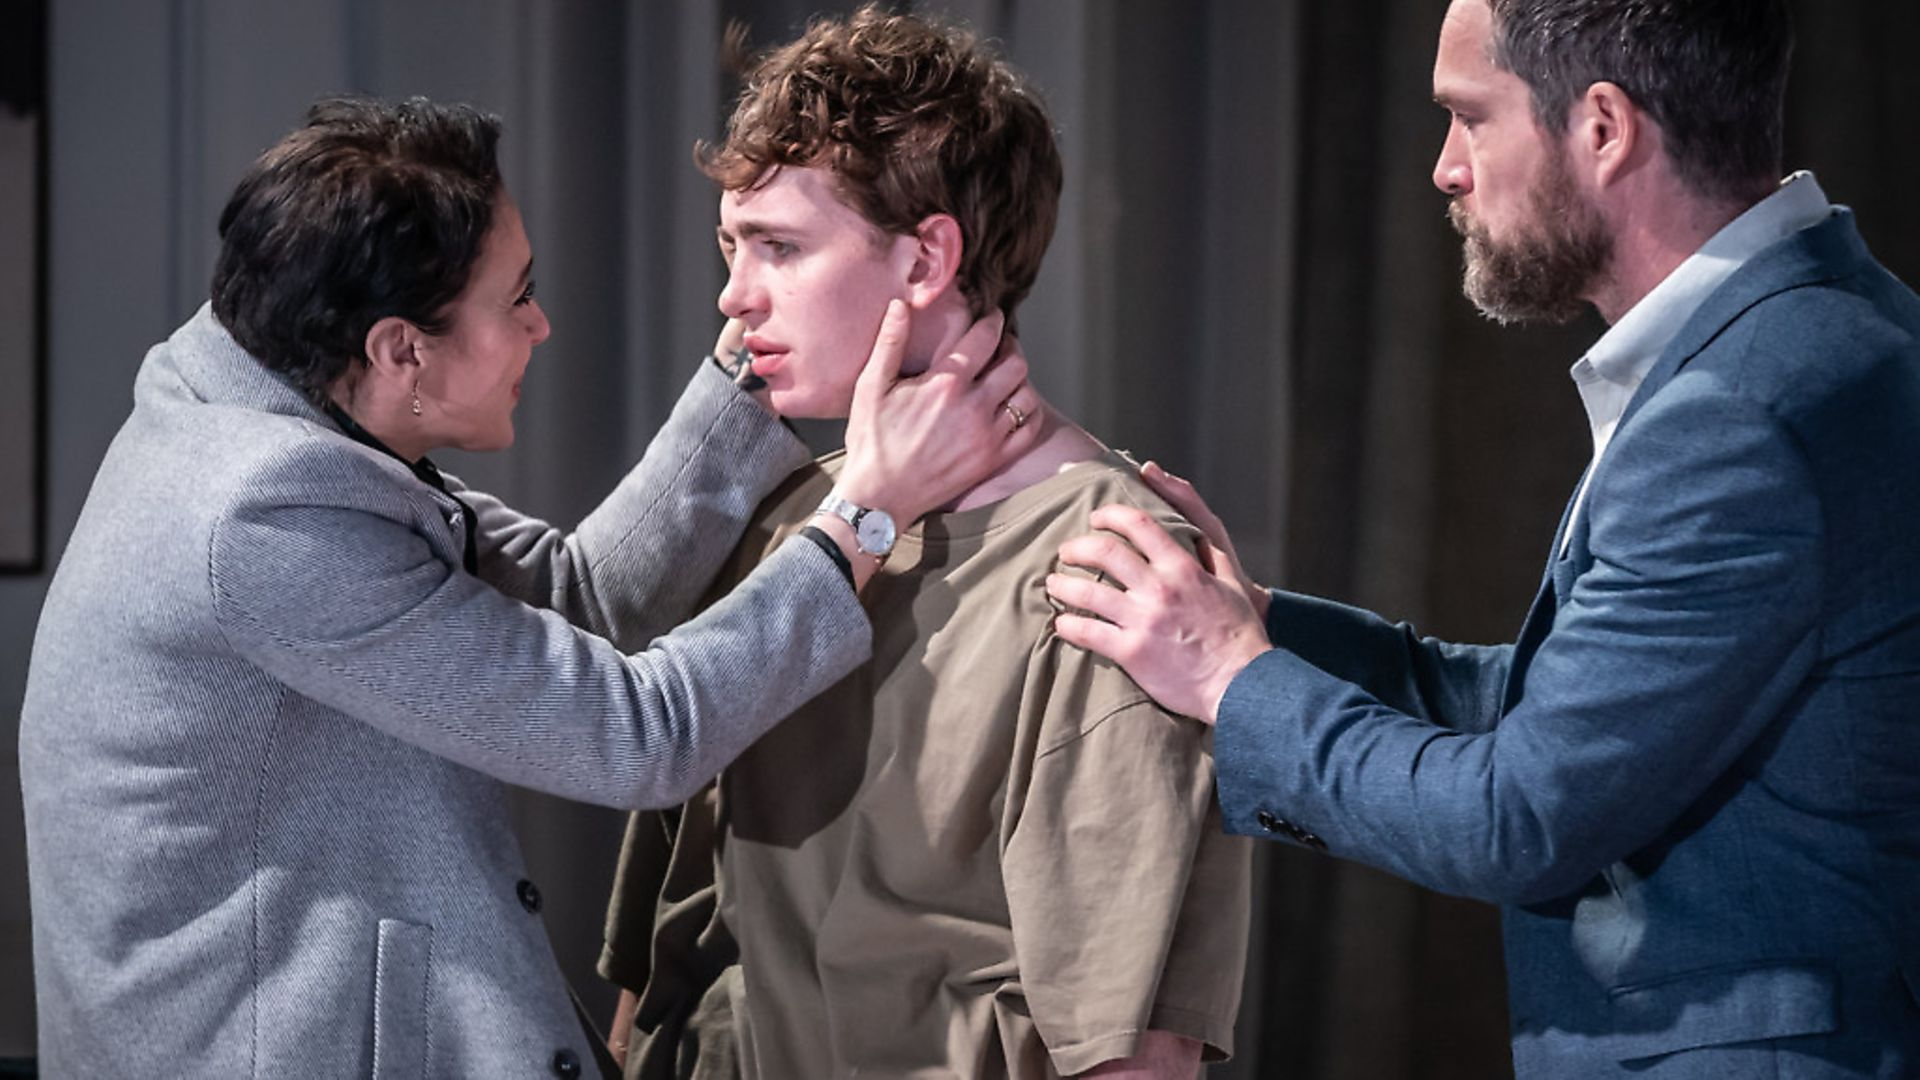 Amanda Abbington as Anne, Laurie Kynaston as Nicolas and John Light as Pierre in The Son at The Kiln picture by Marc Brenner - Credit: Archant